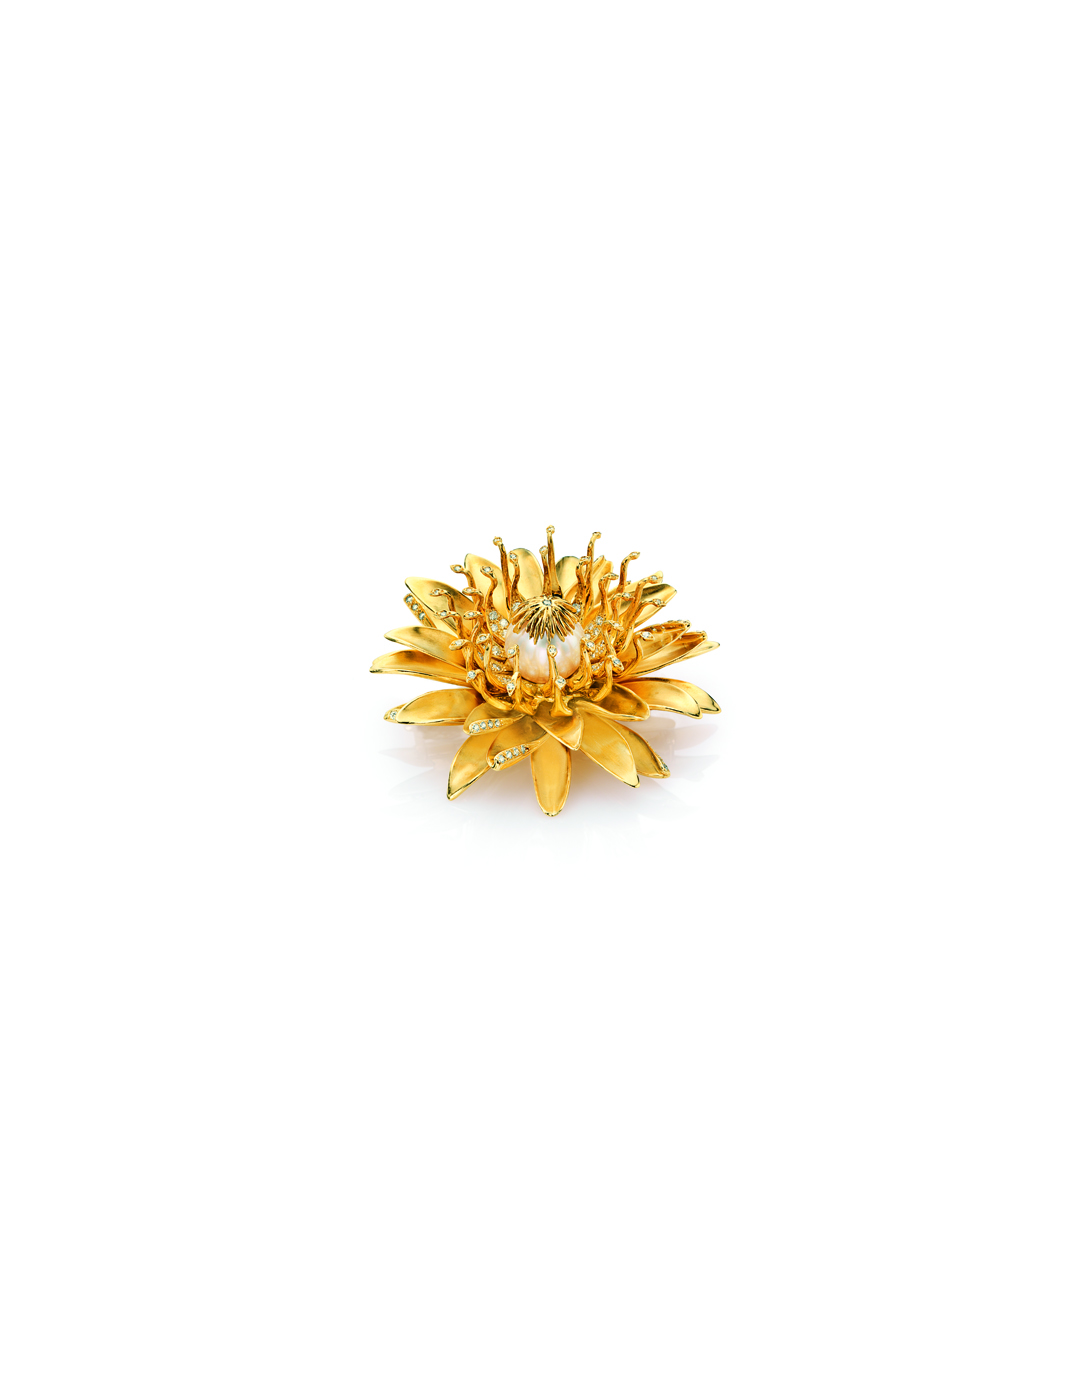 mish_jewelry_products_Water Lily-Brooch-1